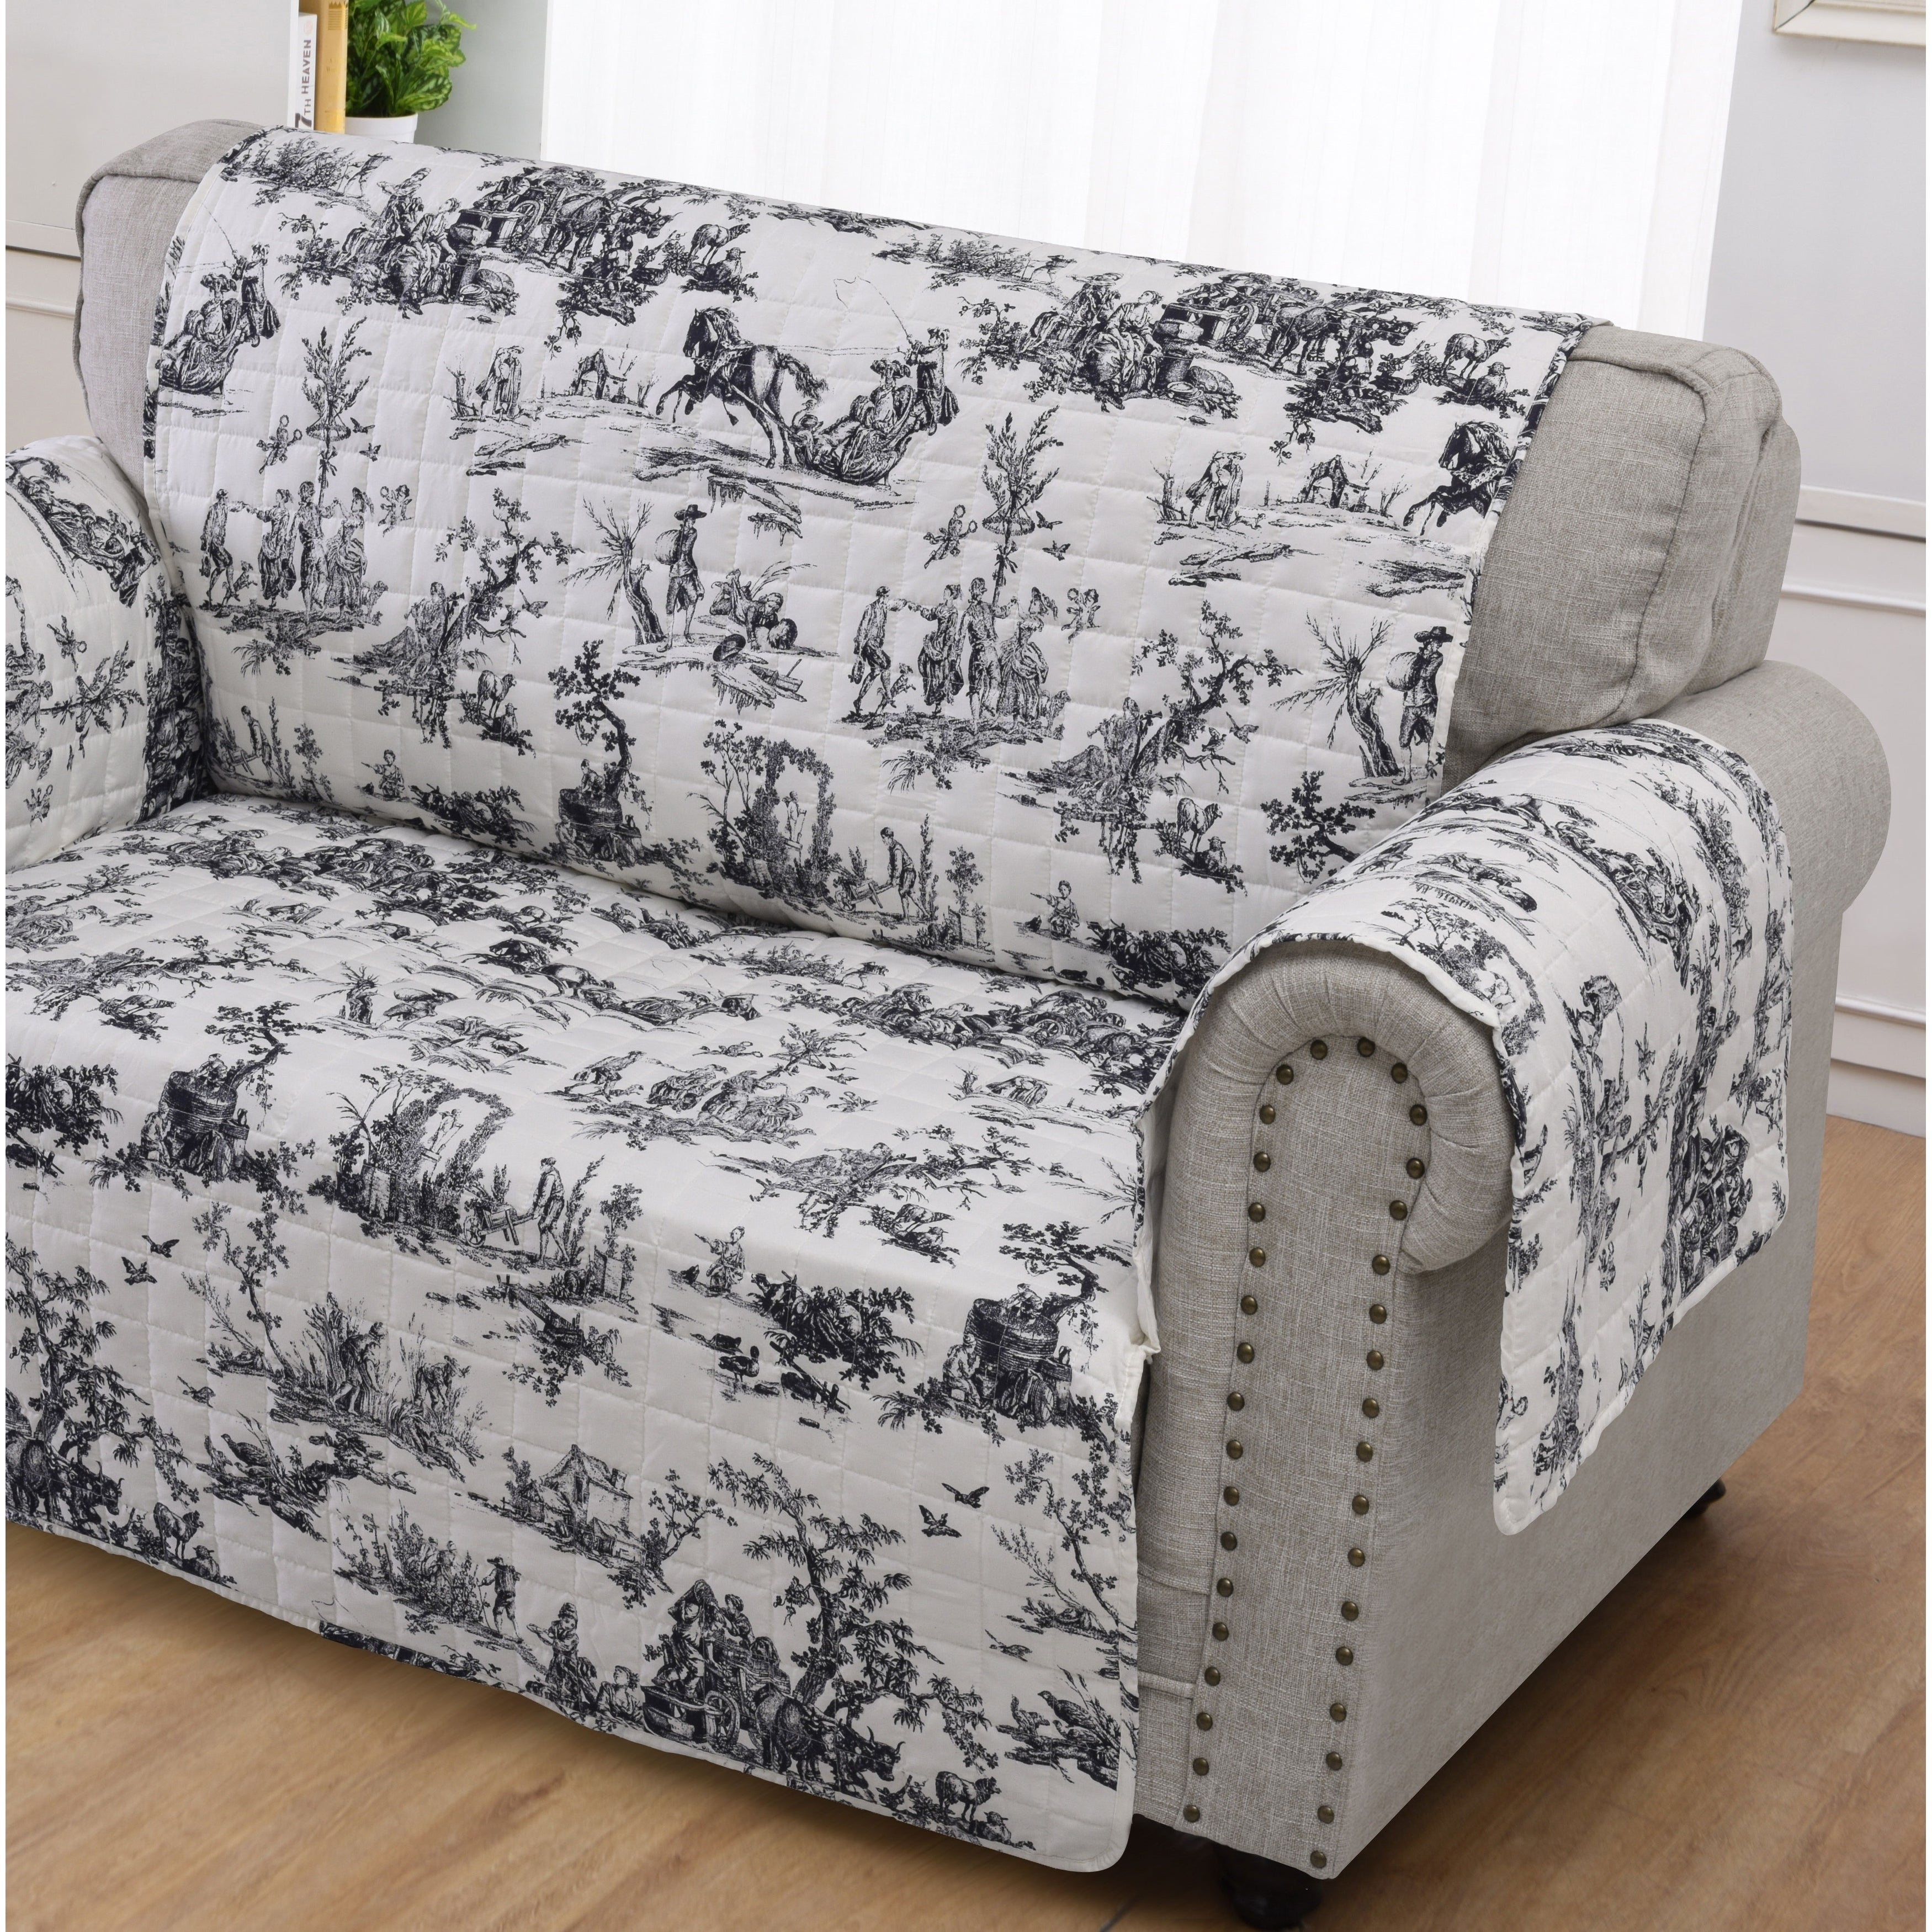 Swell Greenland Home Classic Toile Black Loveseat Protector Caraccident5 Cool Chair Designs And Ideas Caraccident5Info